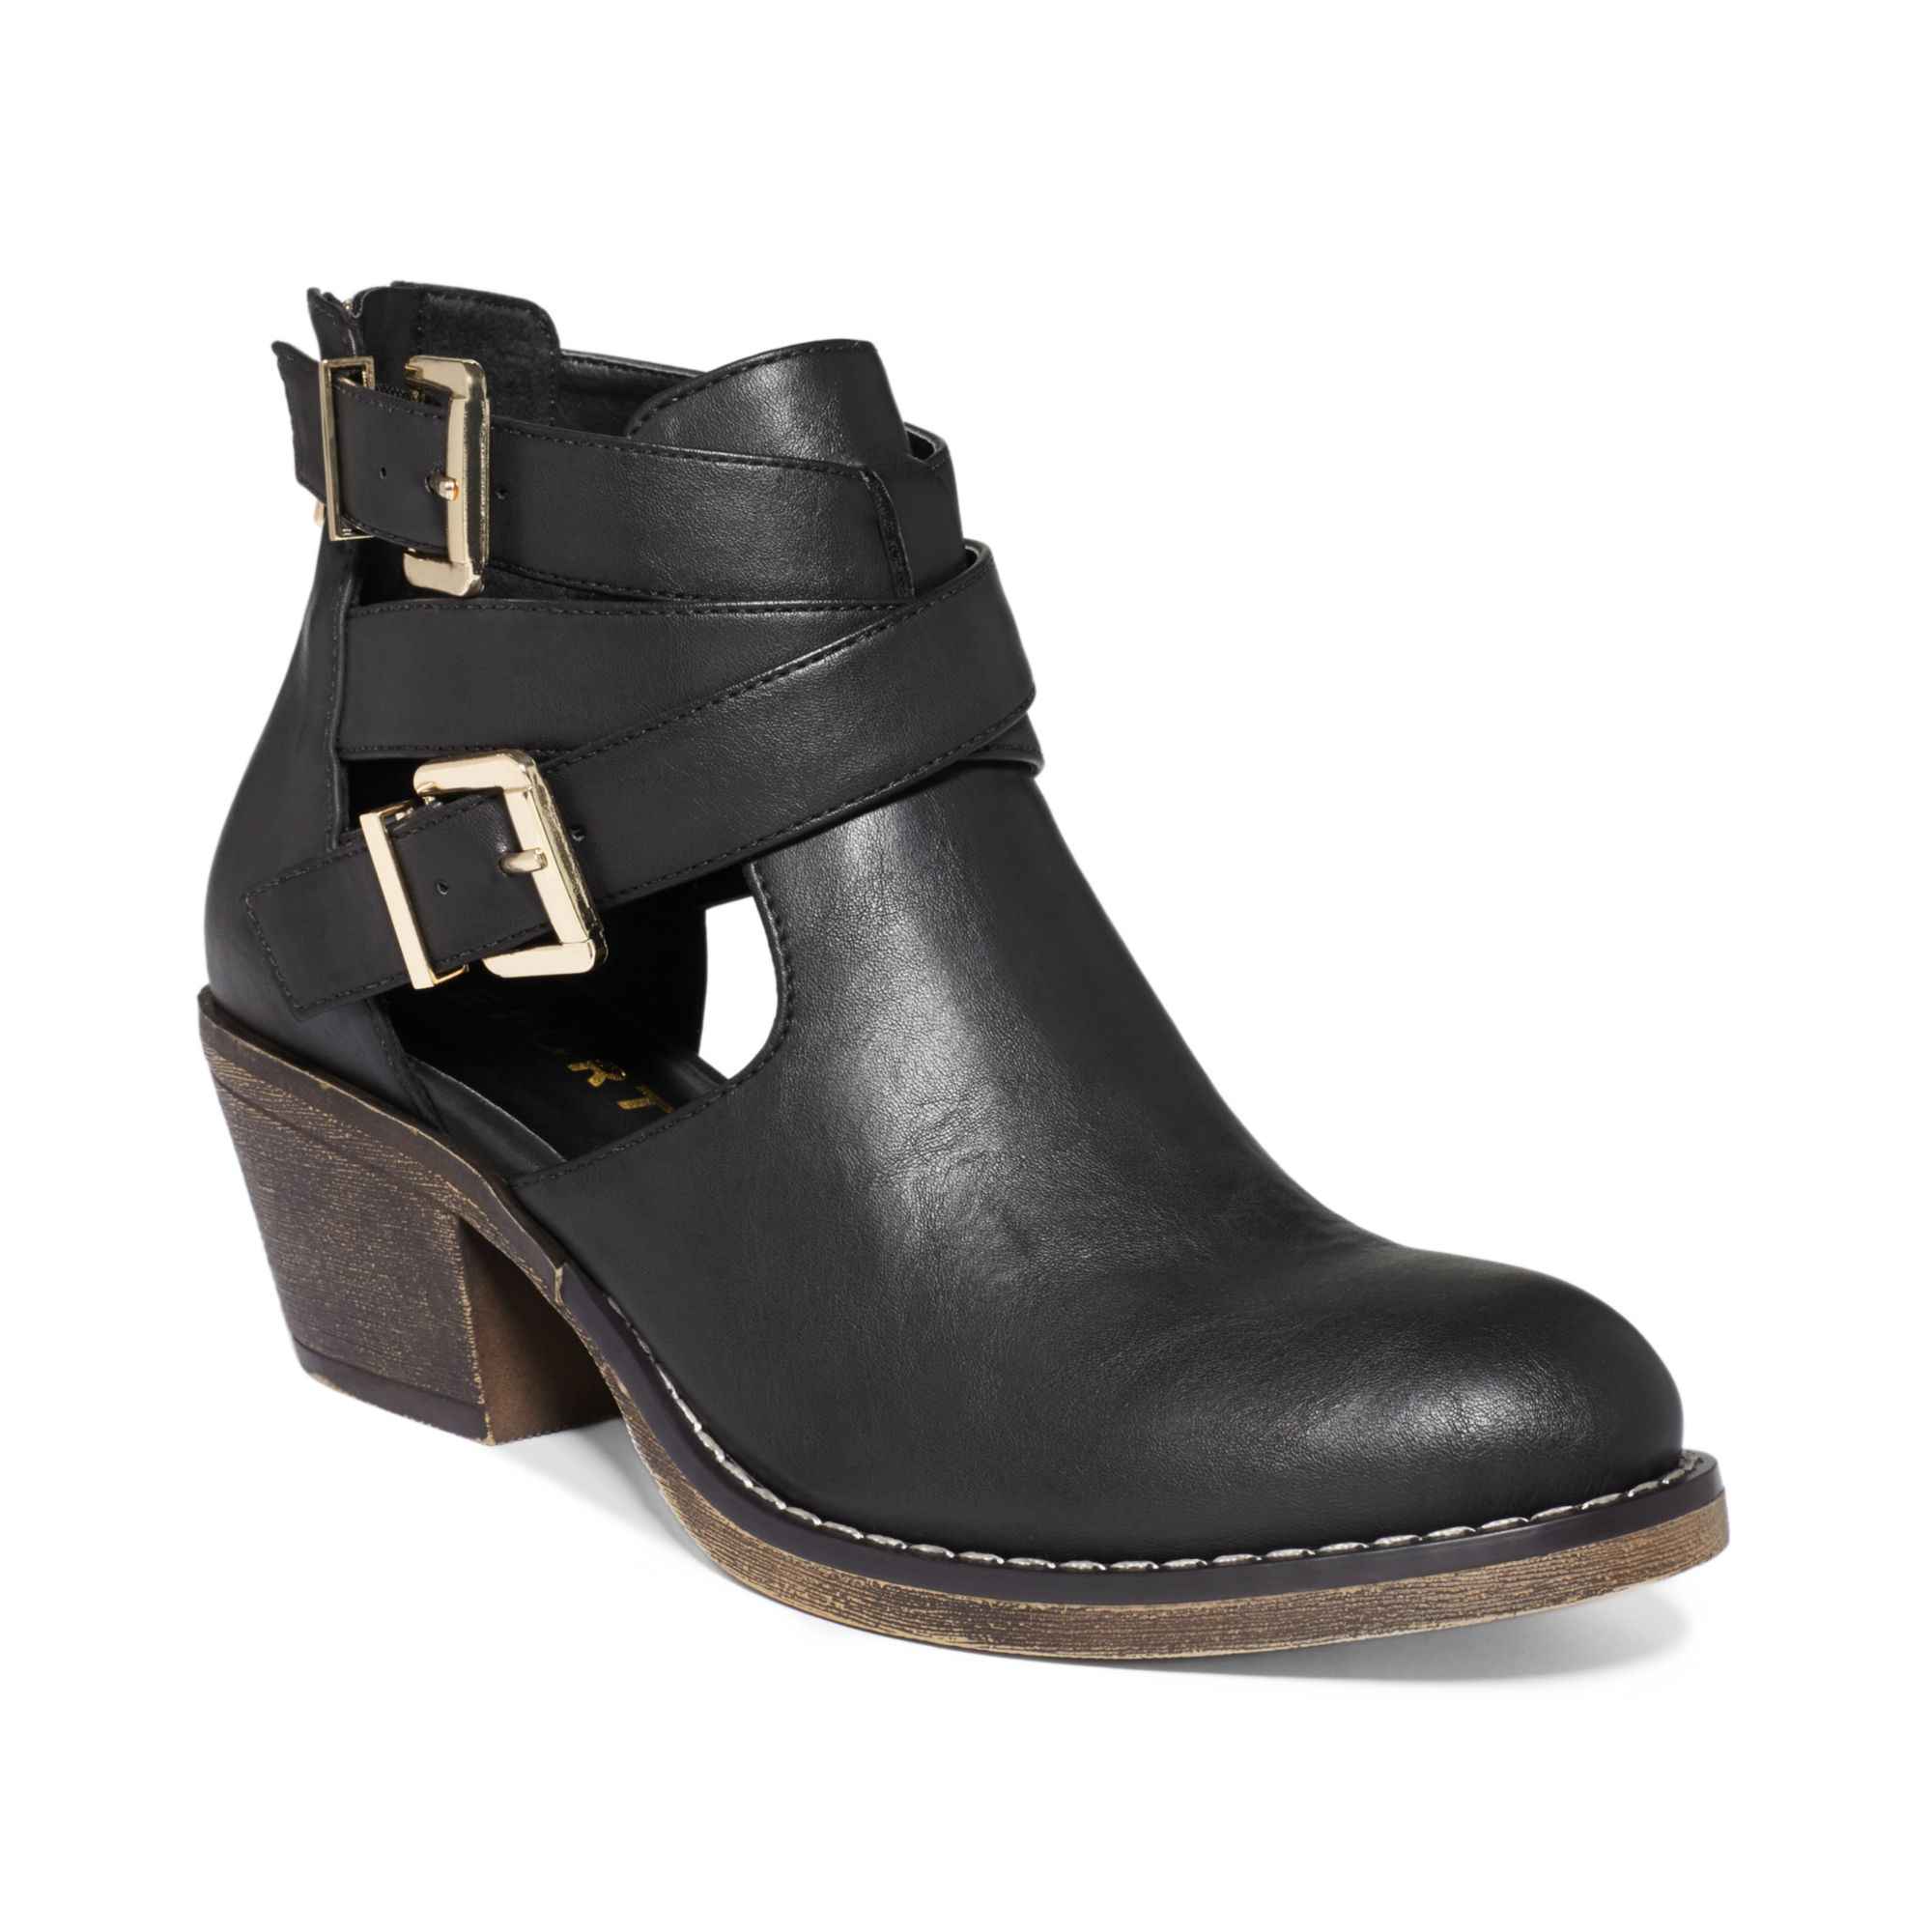 For a limited time, save up to 60% on stylish shoes & boots for women from Qupid on zulily. Shop styles from trendy booties & wedges to casual flats & sneakers.